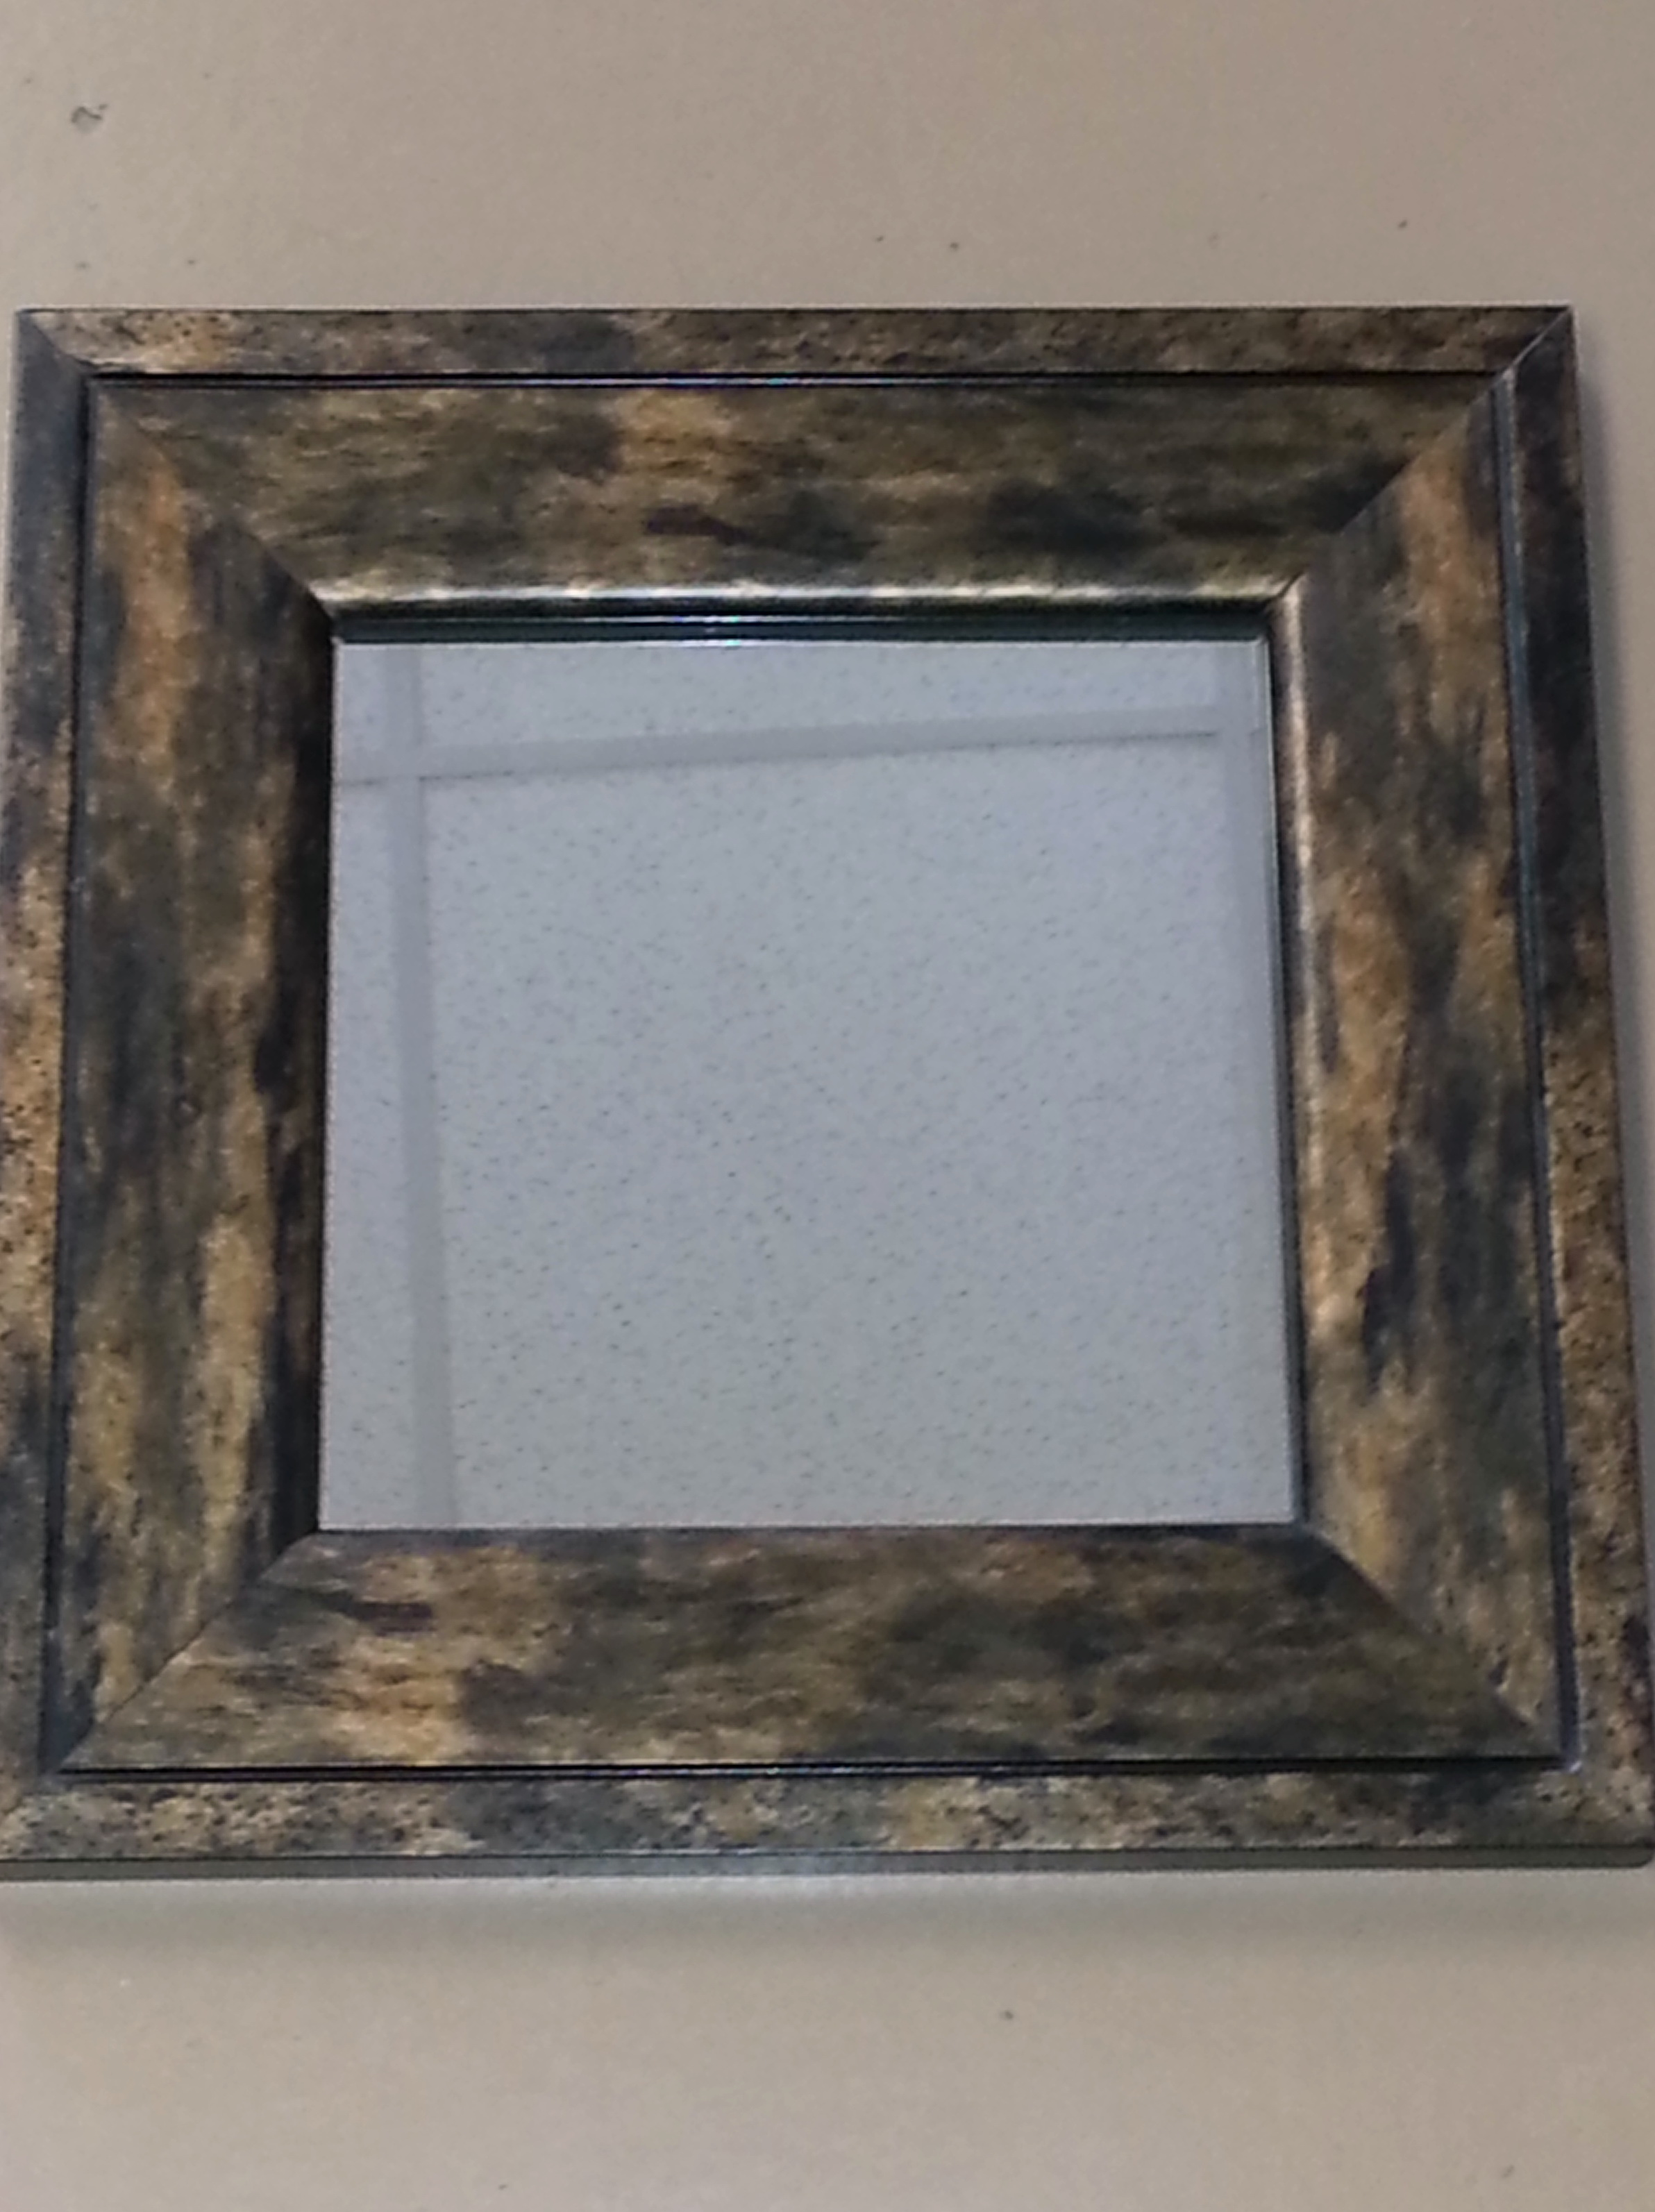 Replacement Mirror Glass For Frame